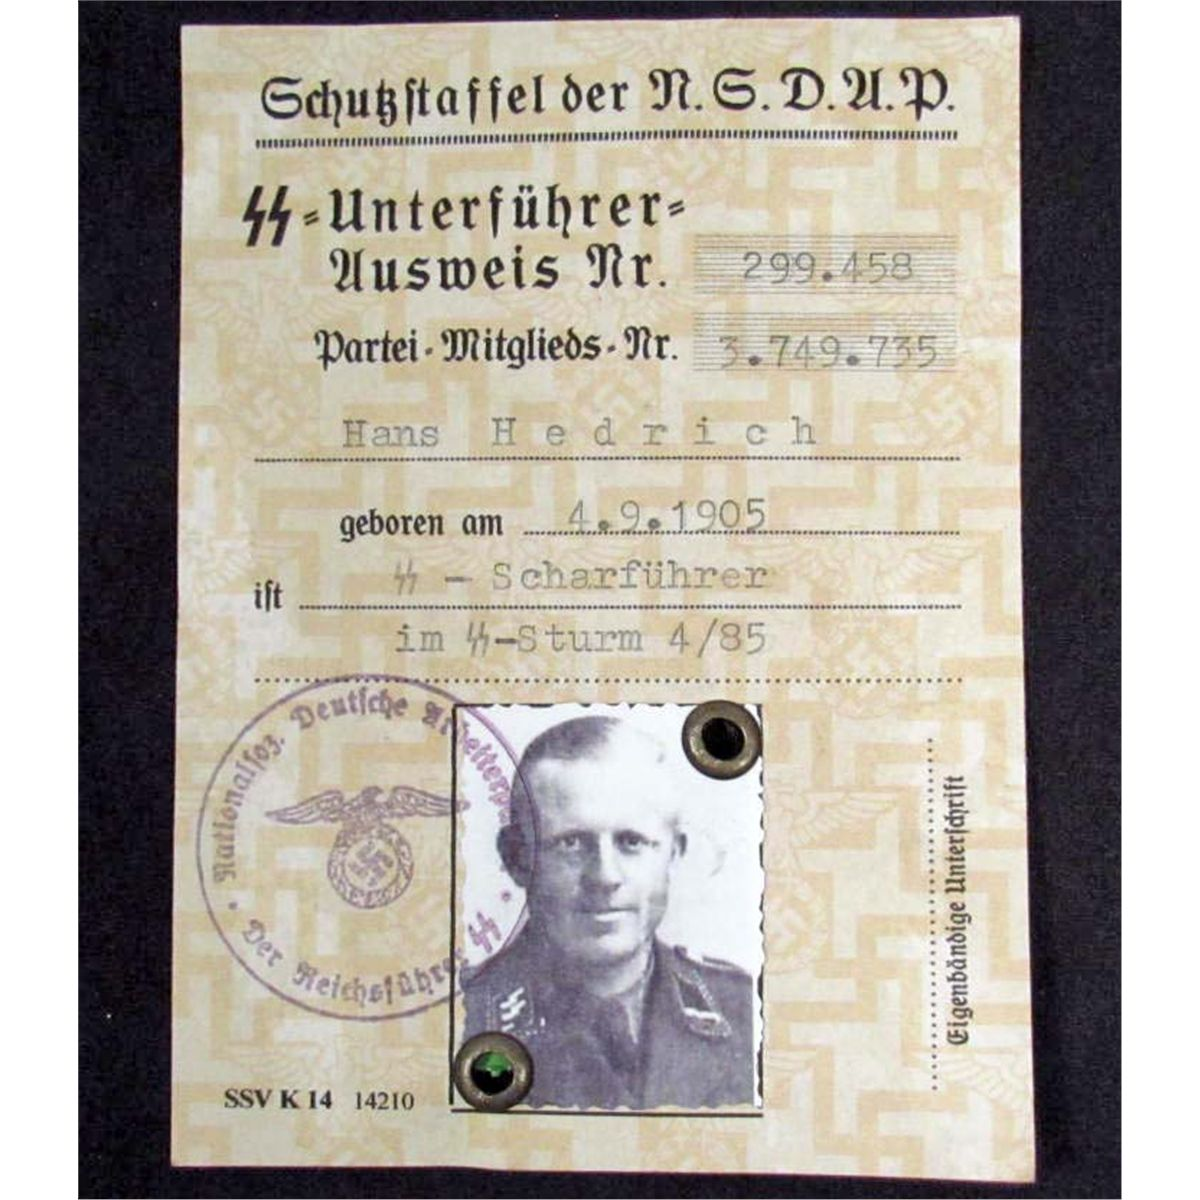 GERMAN NAZI SS NSDAP AUSWEIS ID W/ PHOTO